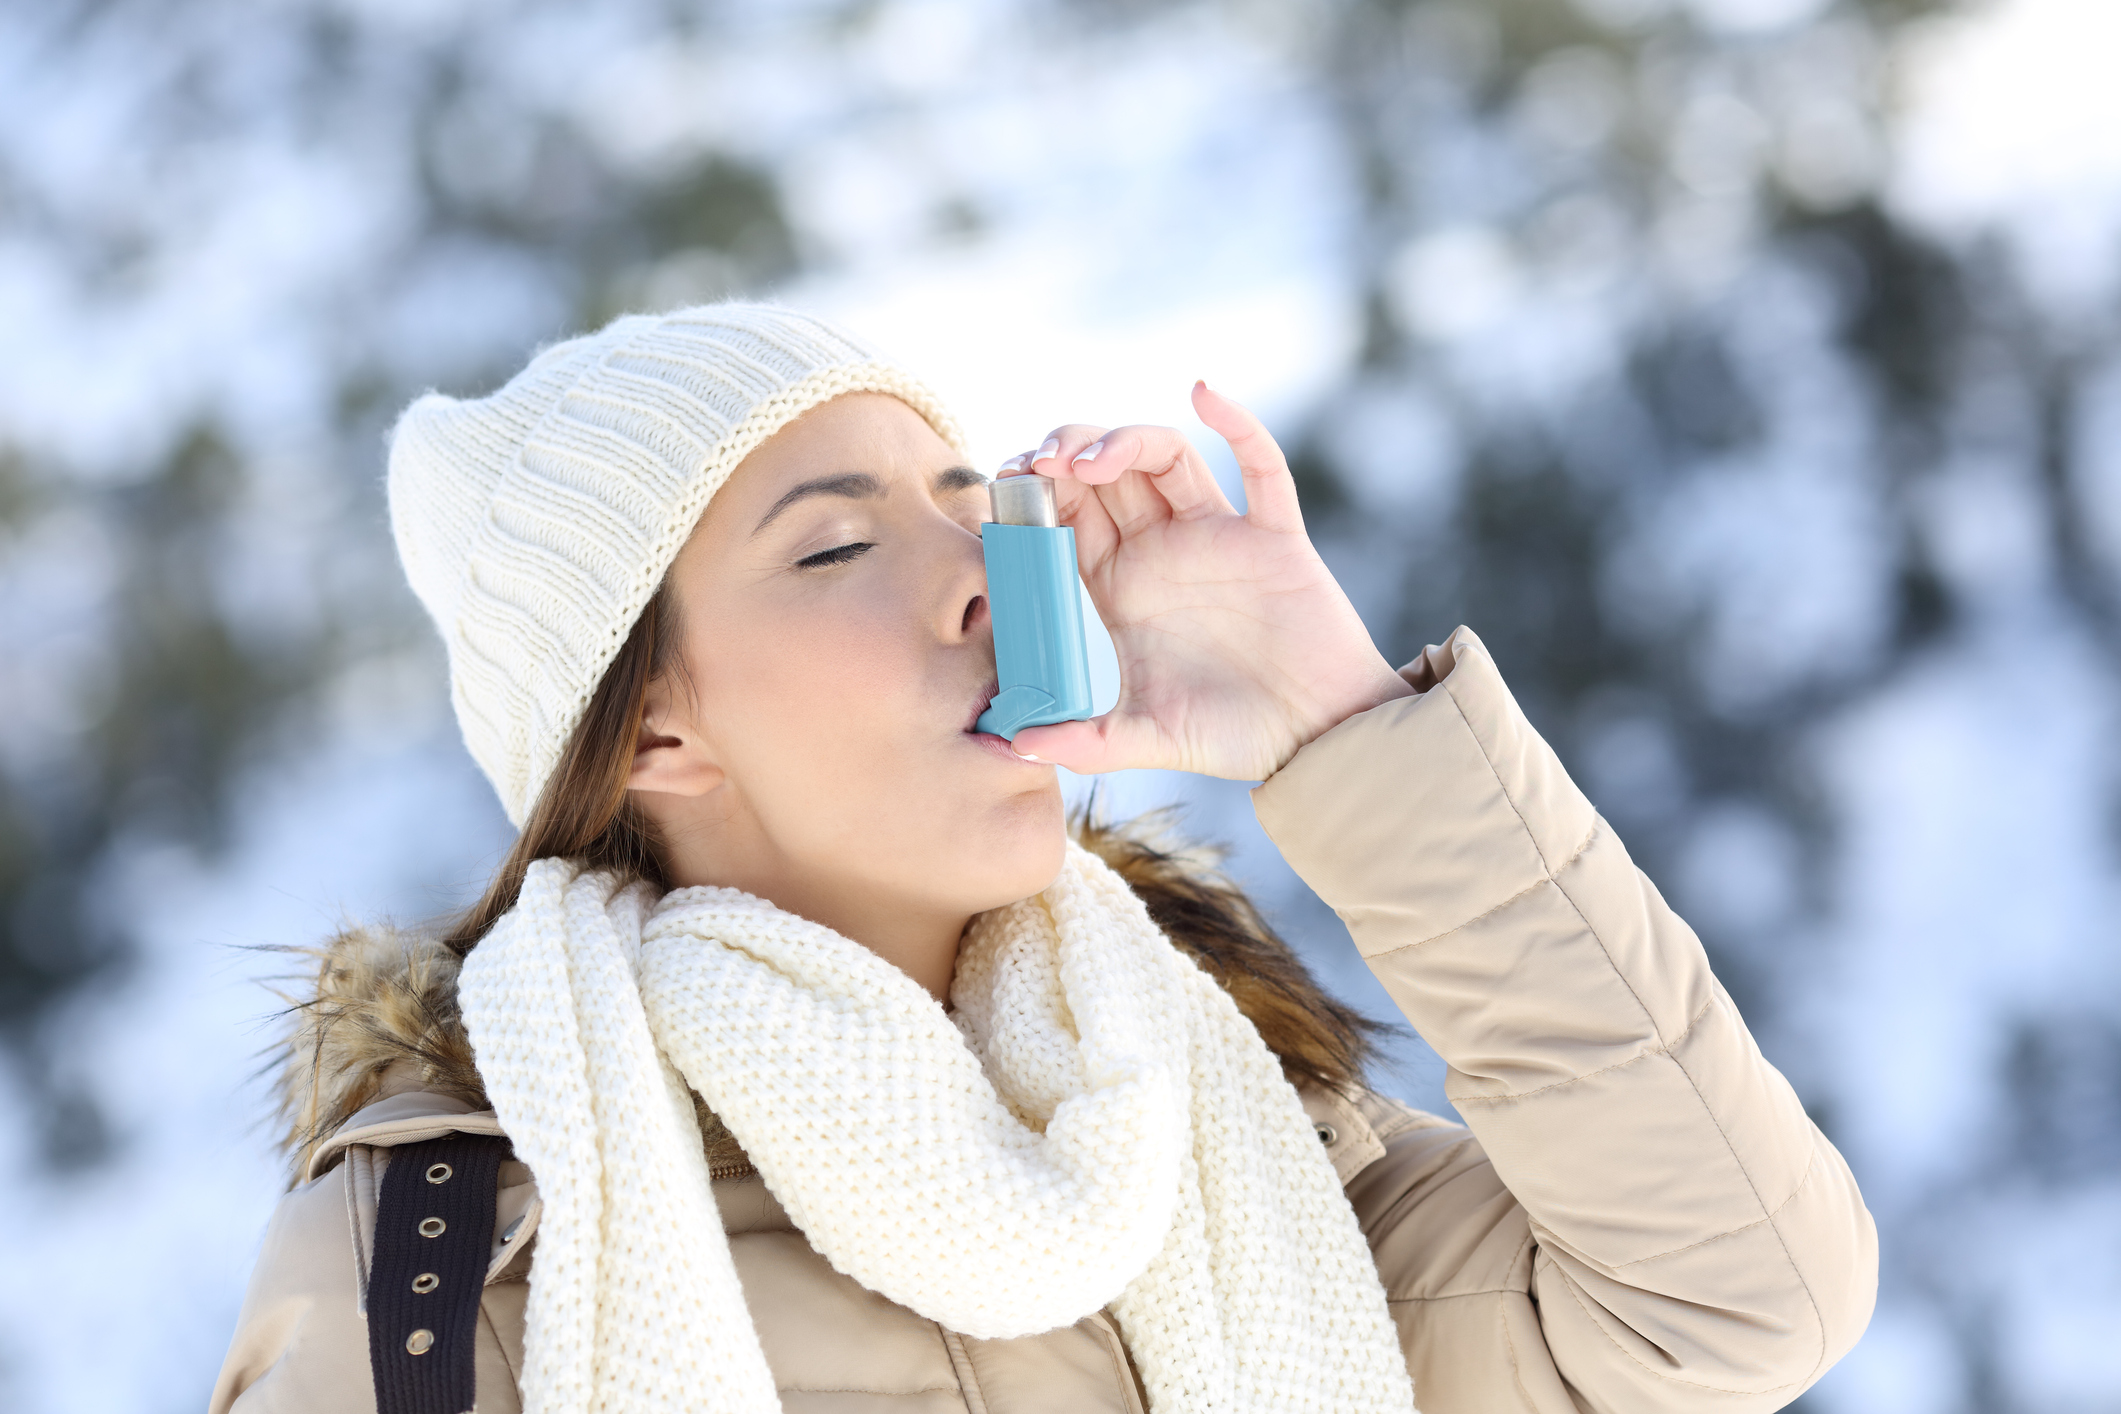 Woman using asthma inhaler in a cold winter